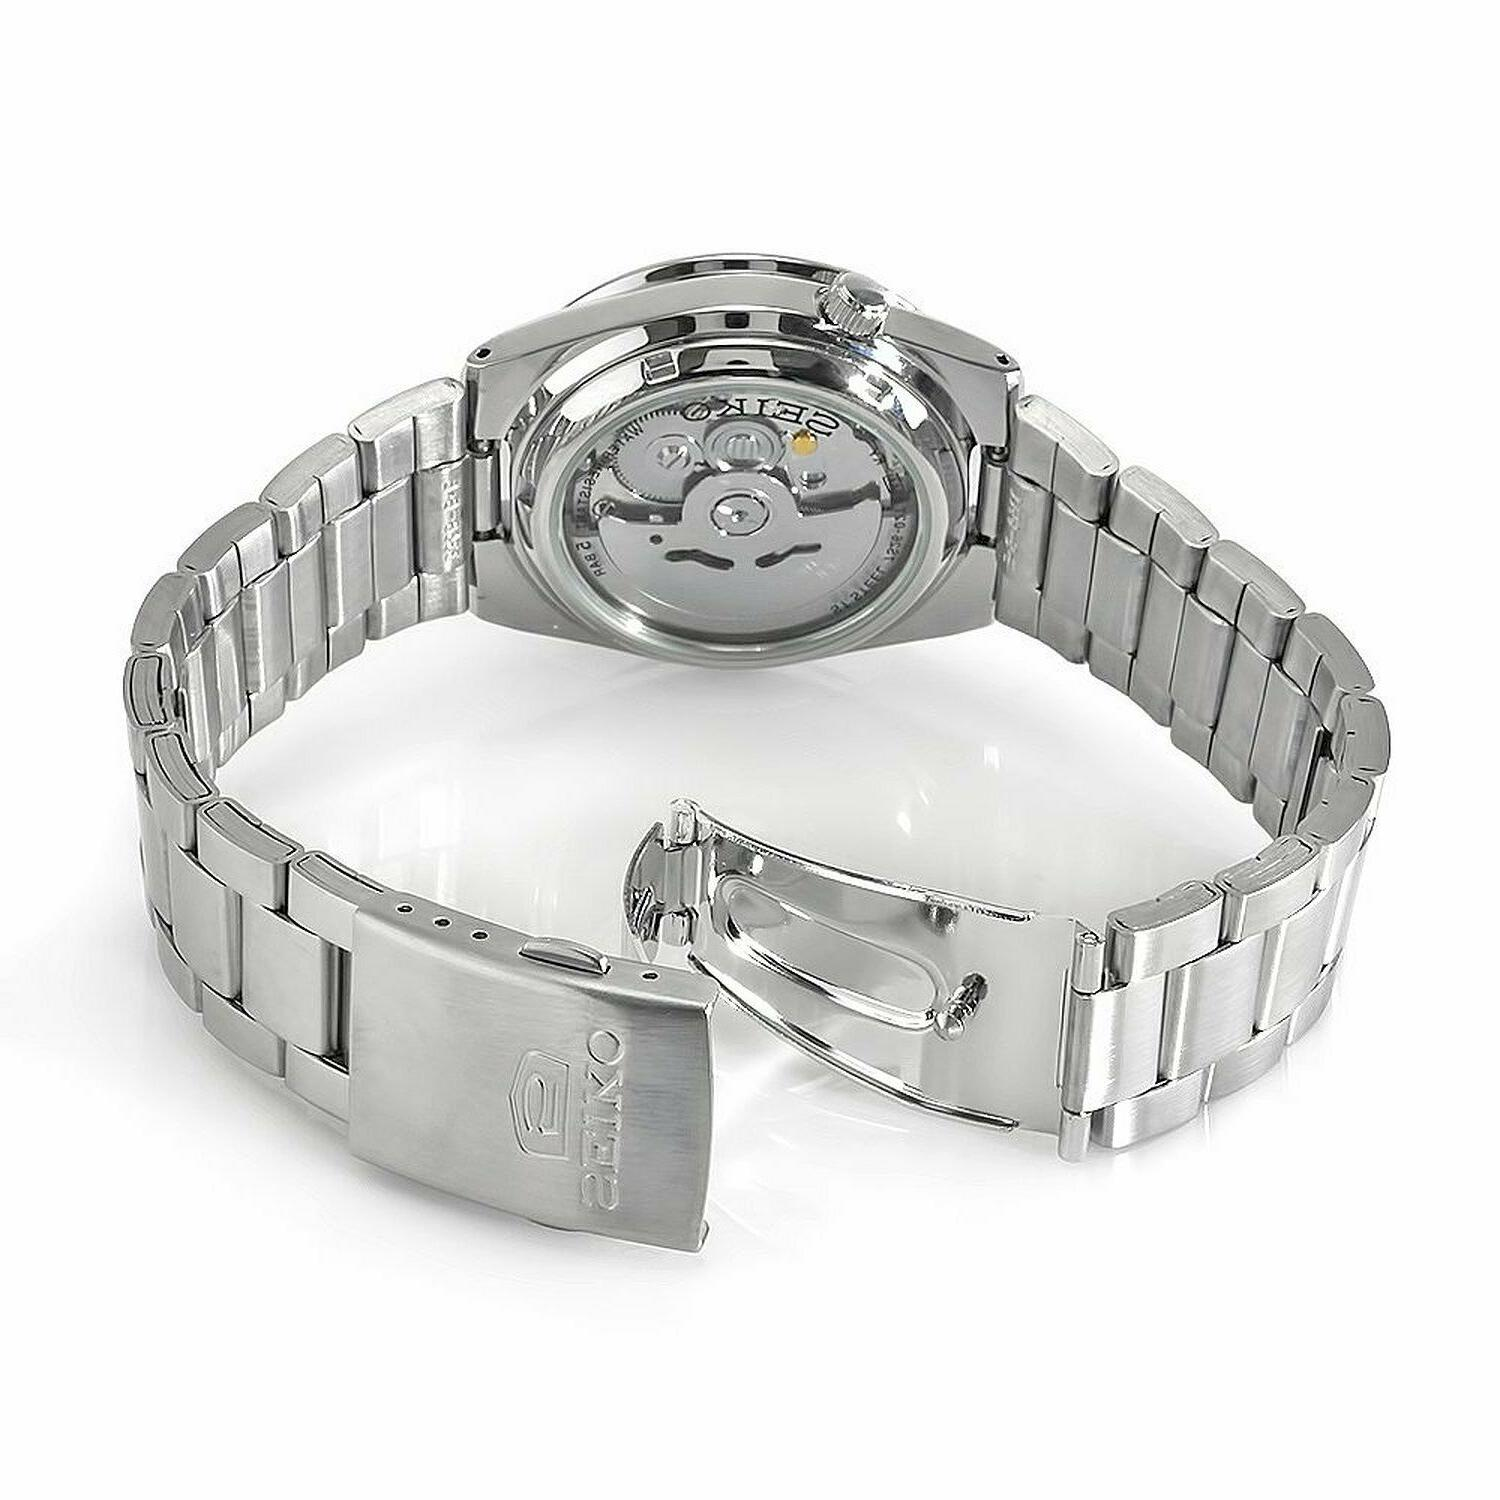 Seiko 5 SNKD99 Day-Date Stainless Steel Men's